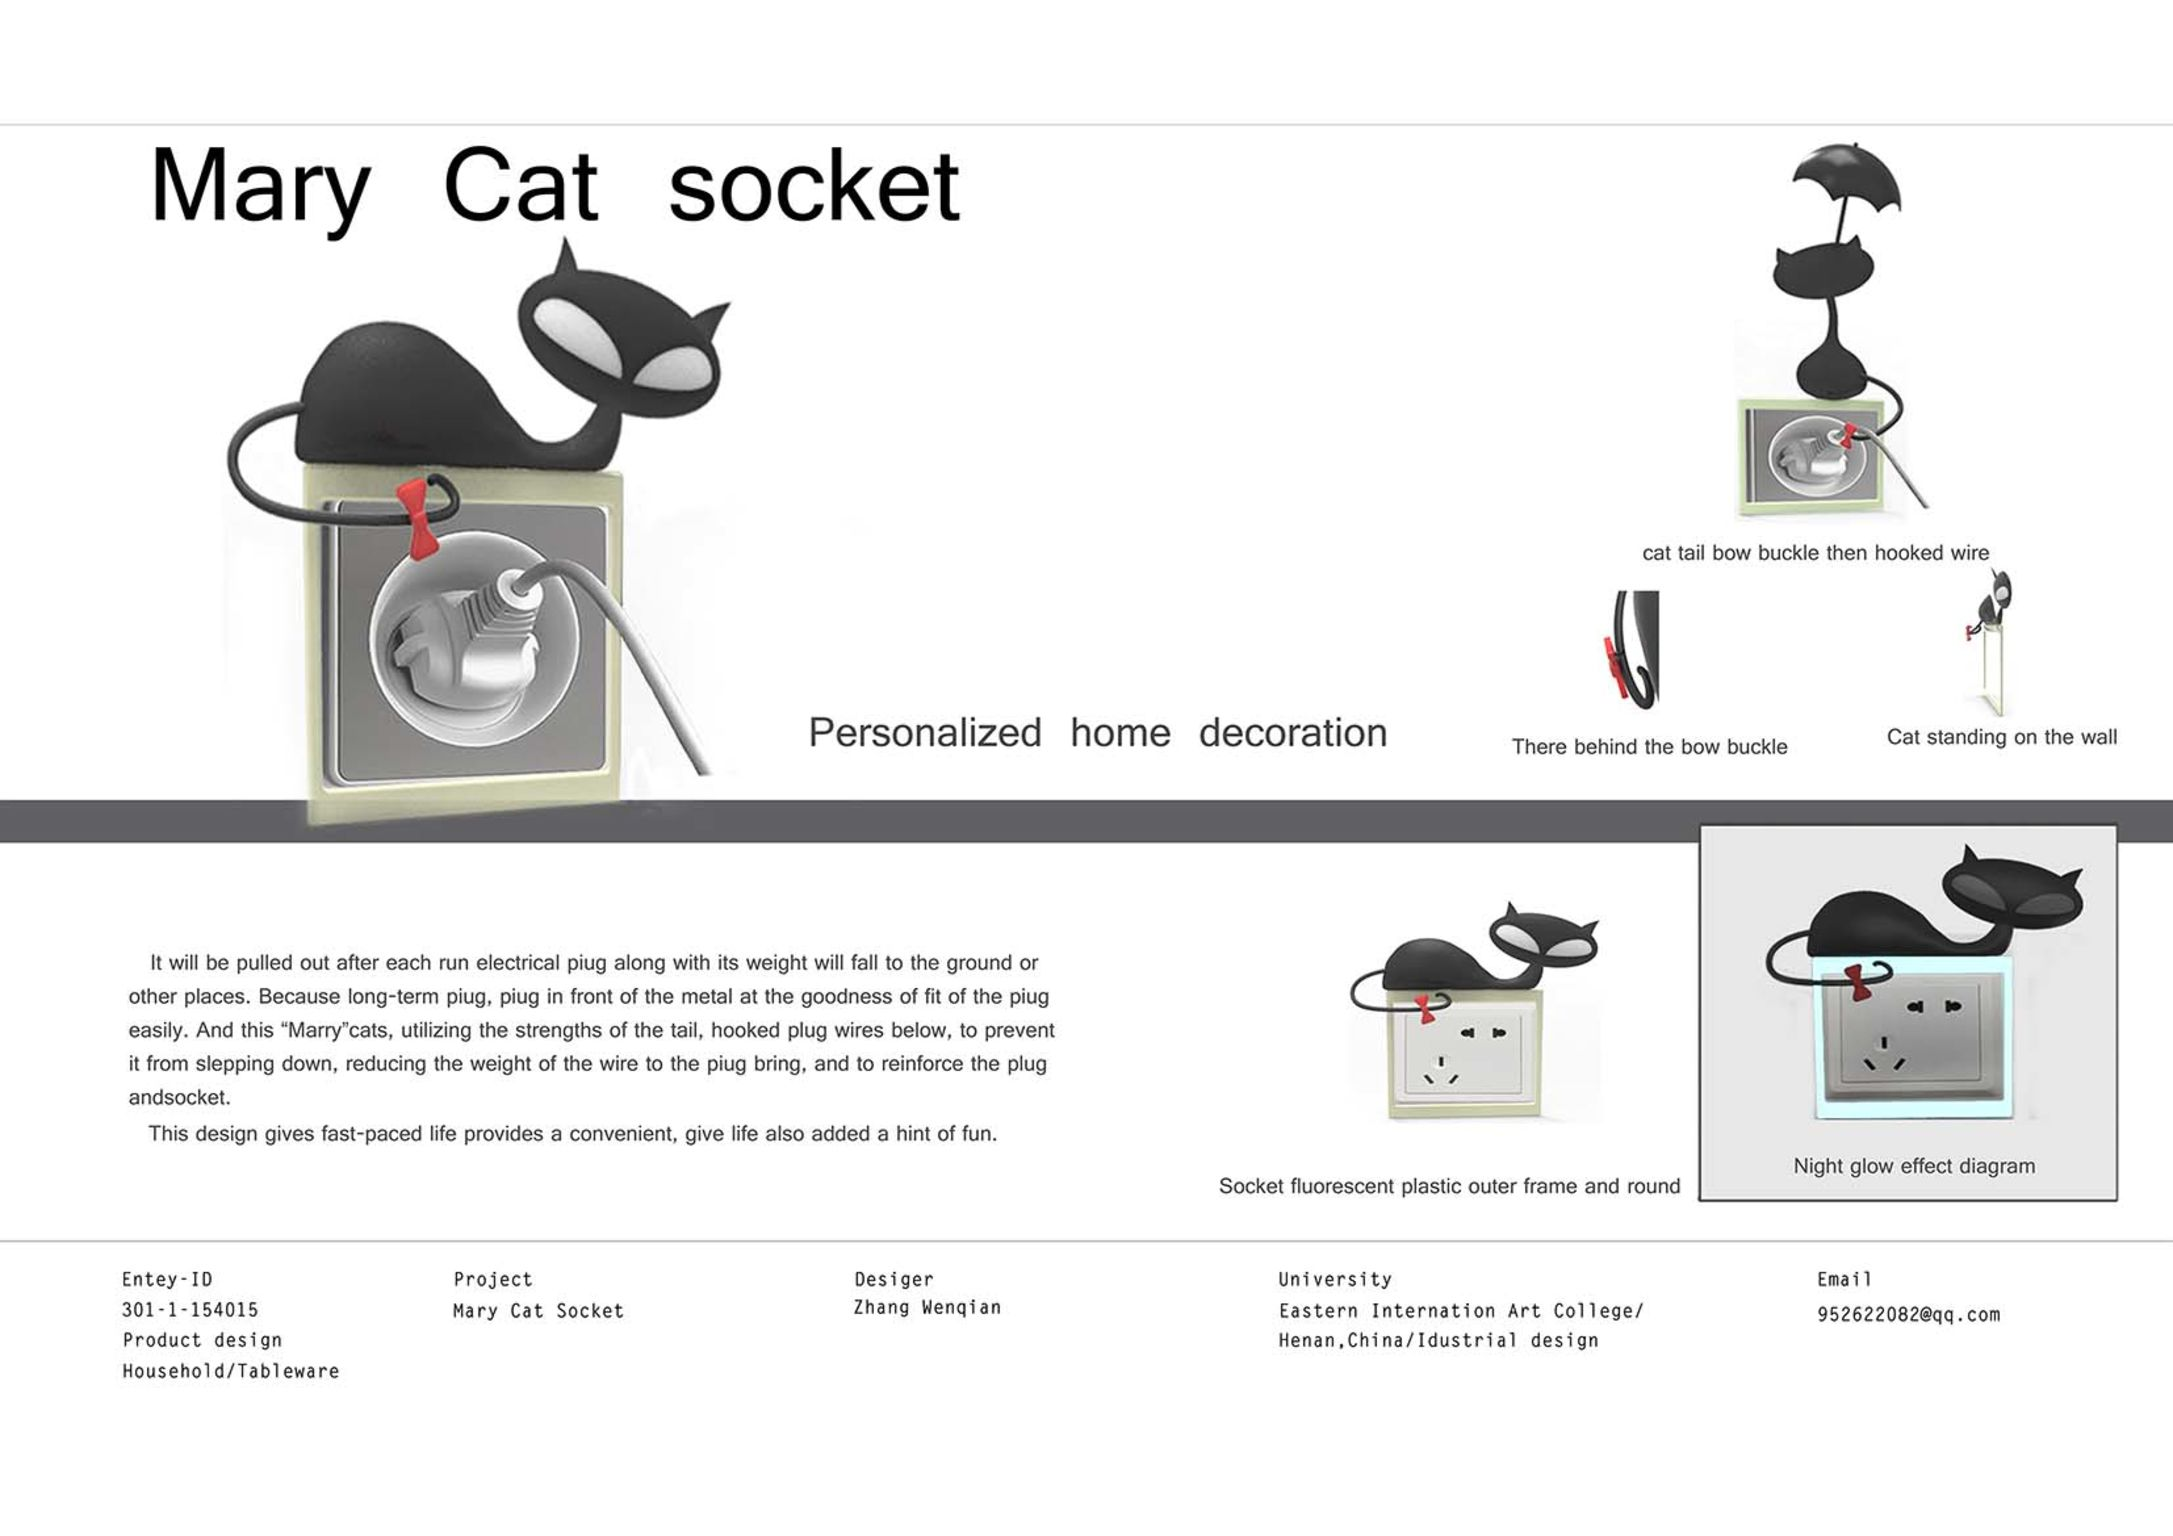 mary cat socket / product design household